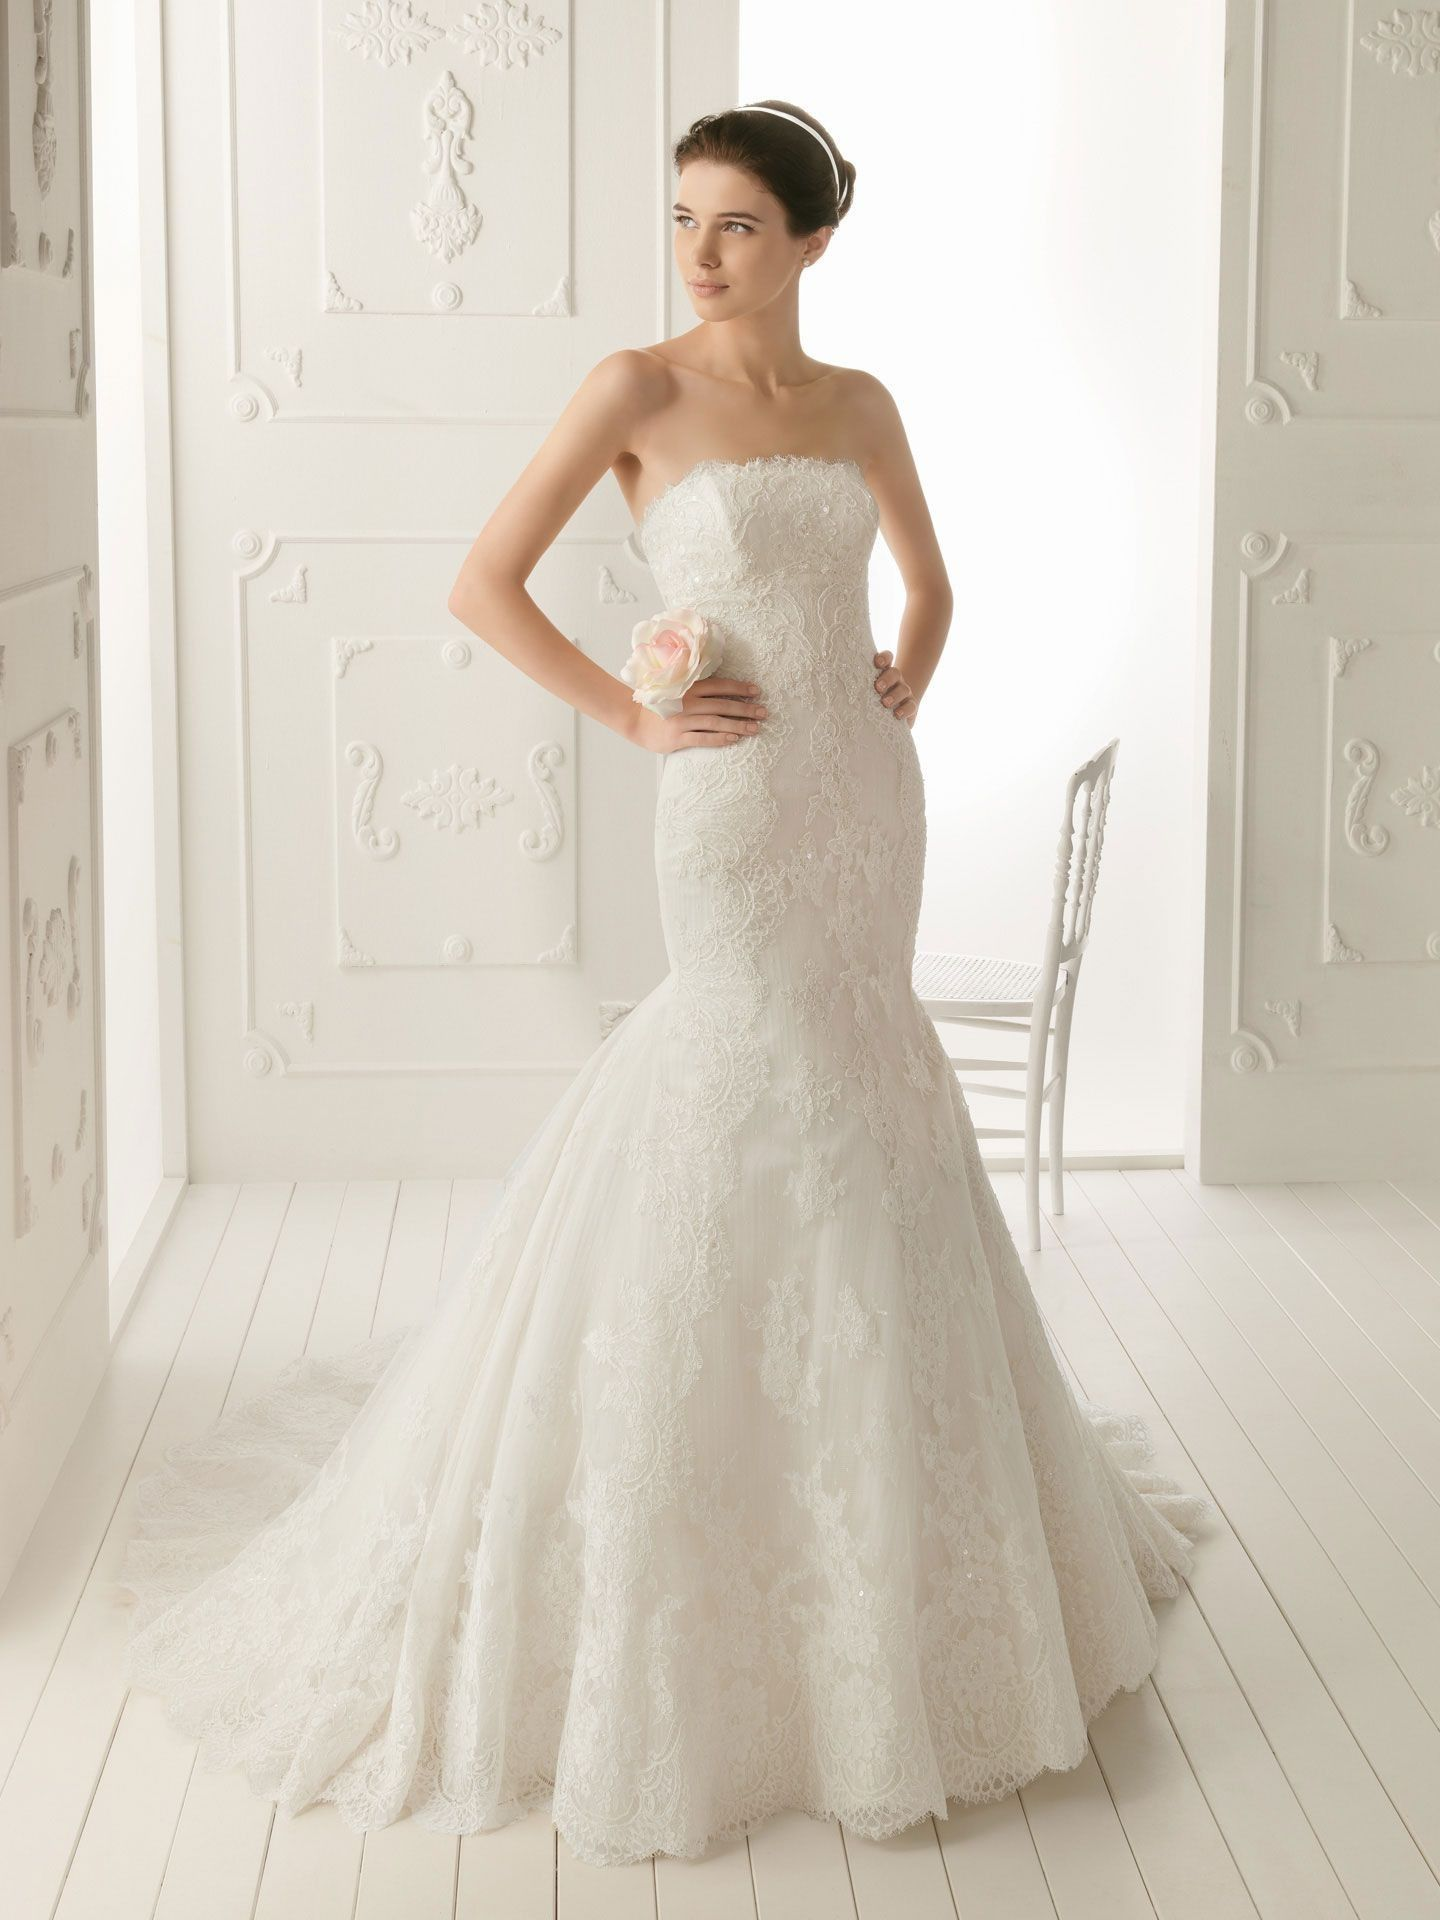 Best wedding dresses 2013 mermaid style with whole lace best wedding dresses 2013 mermaid style with whole lace design 2013 wedding ombrellifo Images